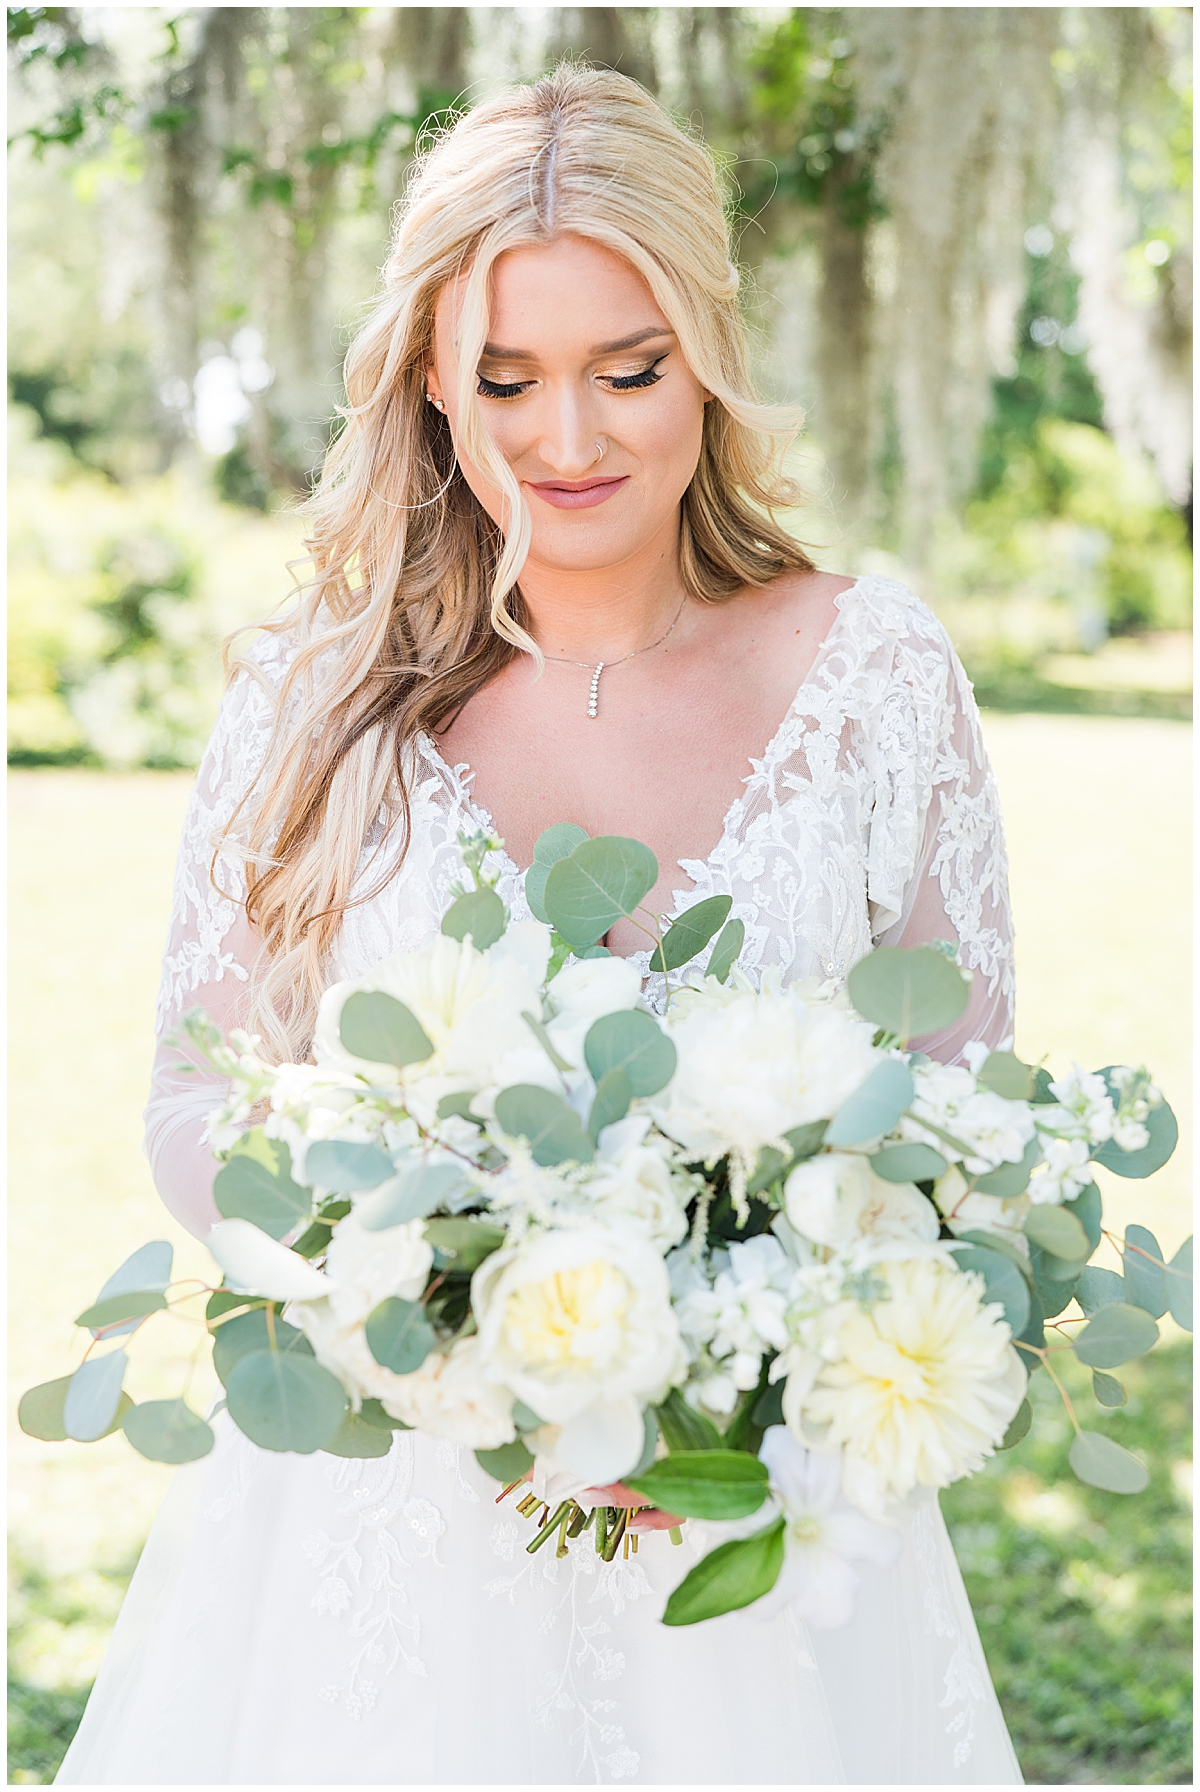 Charleston bride holds bouquet and looks down at flowers